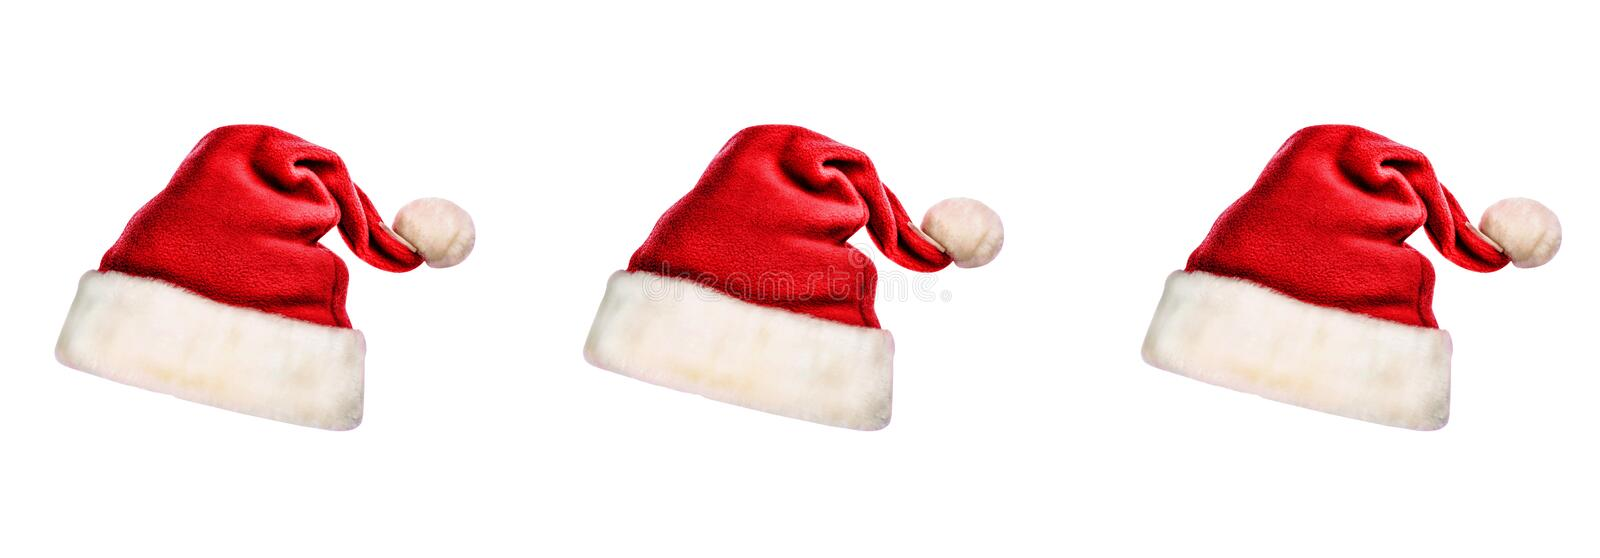 Santa Claus hat, isolated, white background, design stock photography